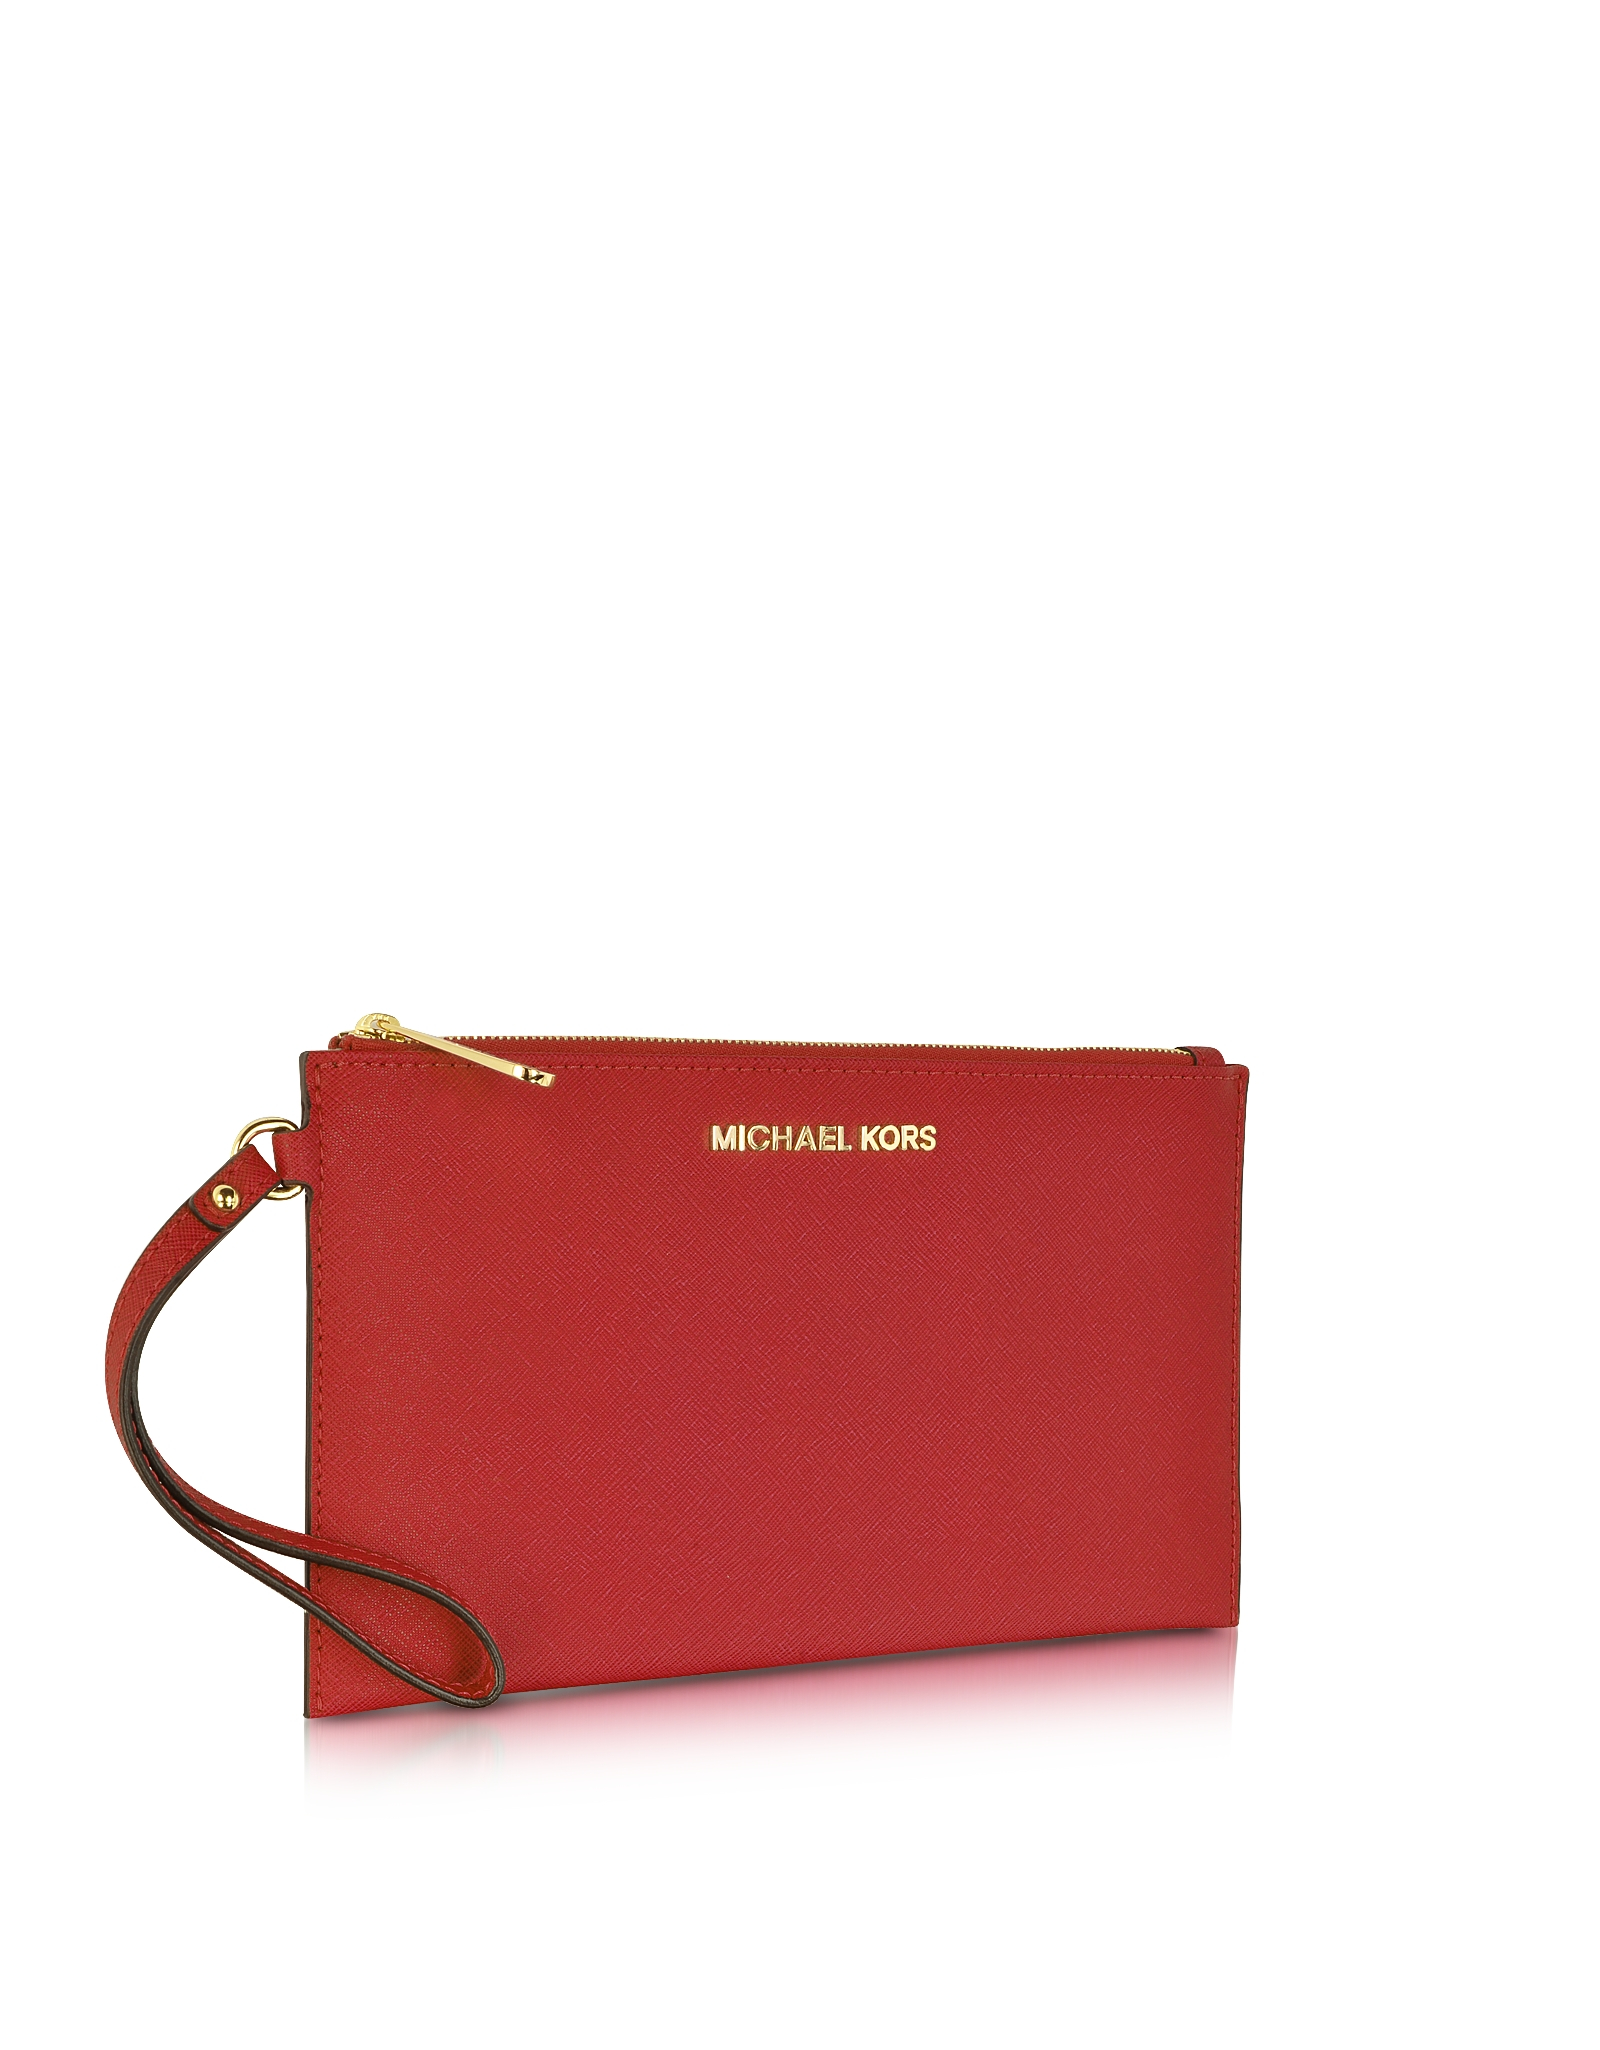 Michael kors Large Jet Set Travel Zip Clutch in Red | Lyst